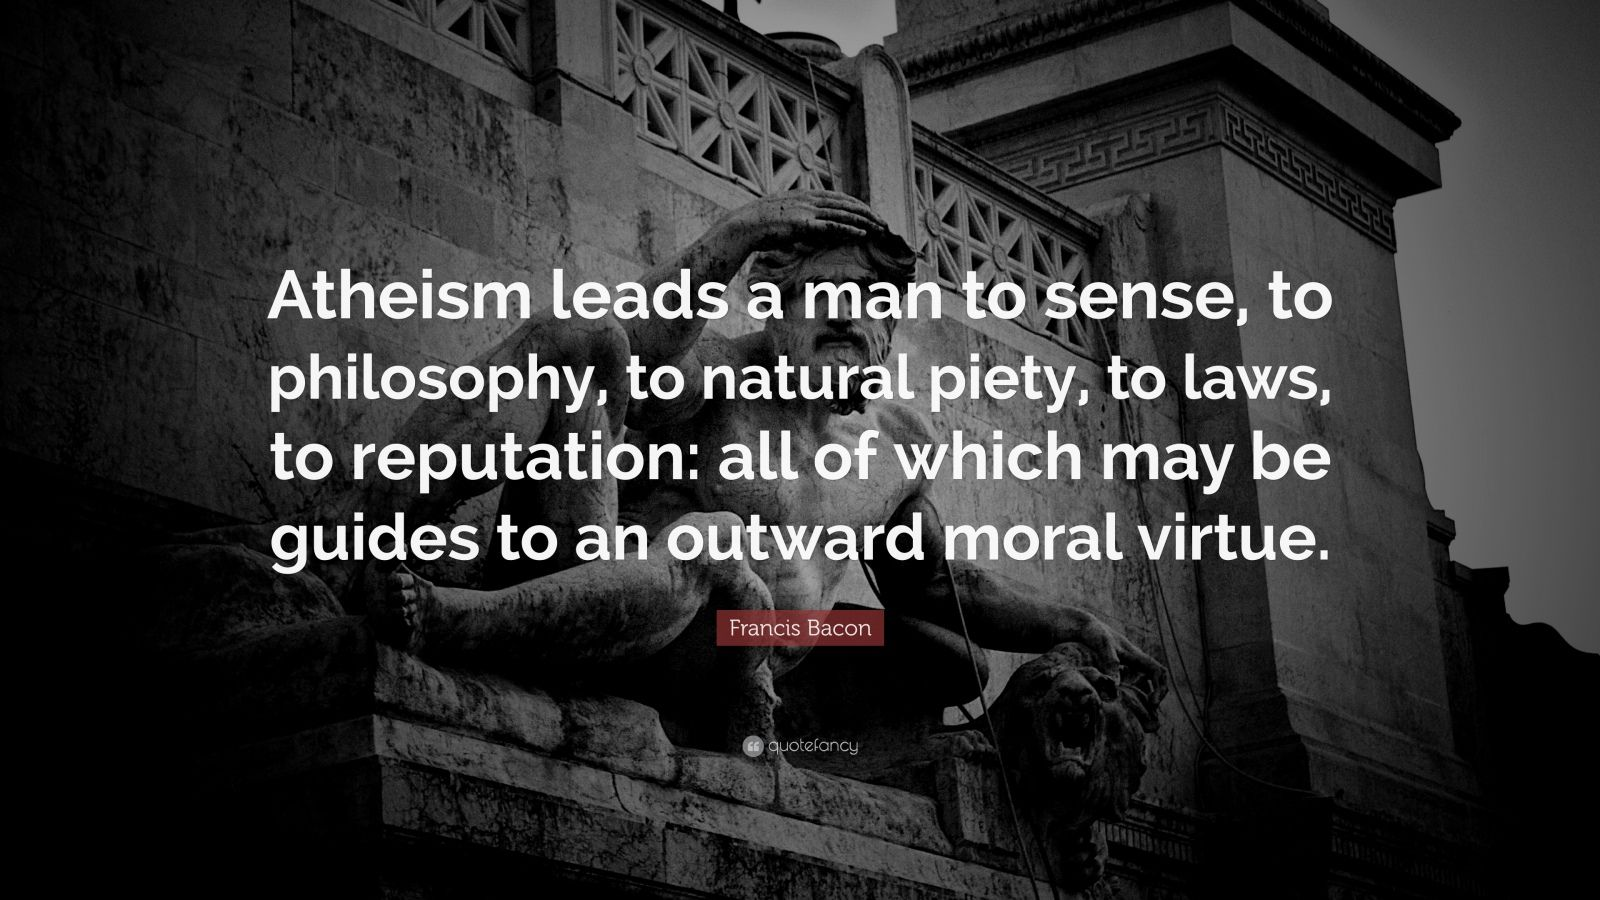 """Francis Bacon Quote: """"Atheism leads a man to sense, to philosophy, to natural piety, to laws, to reputation: all of which may be guides to an outward moral virtue."""""""